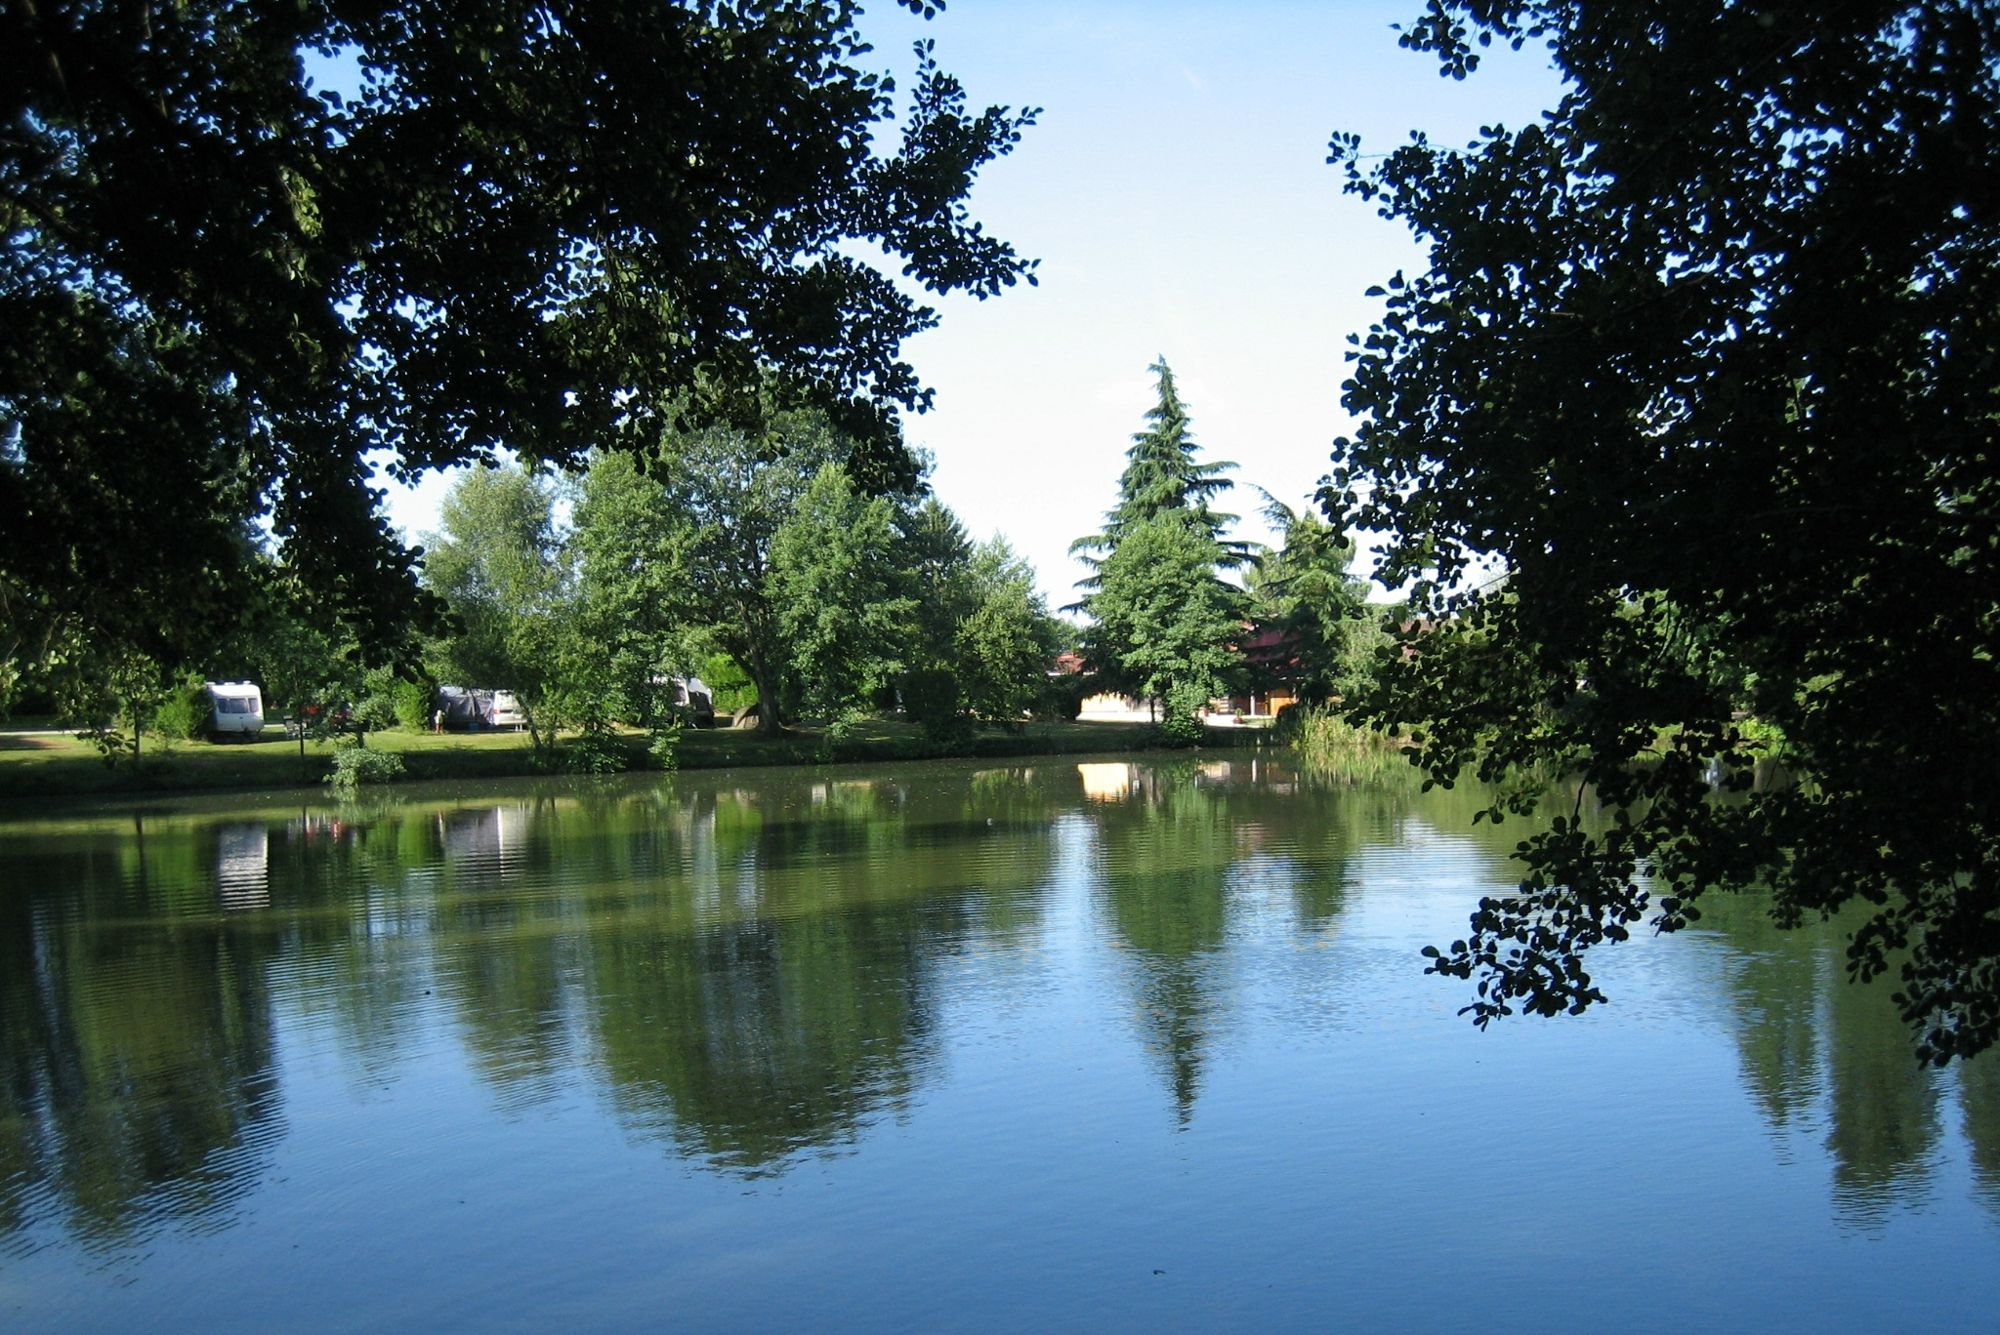 Campsites in Orne holidays at Cool Camping